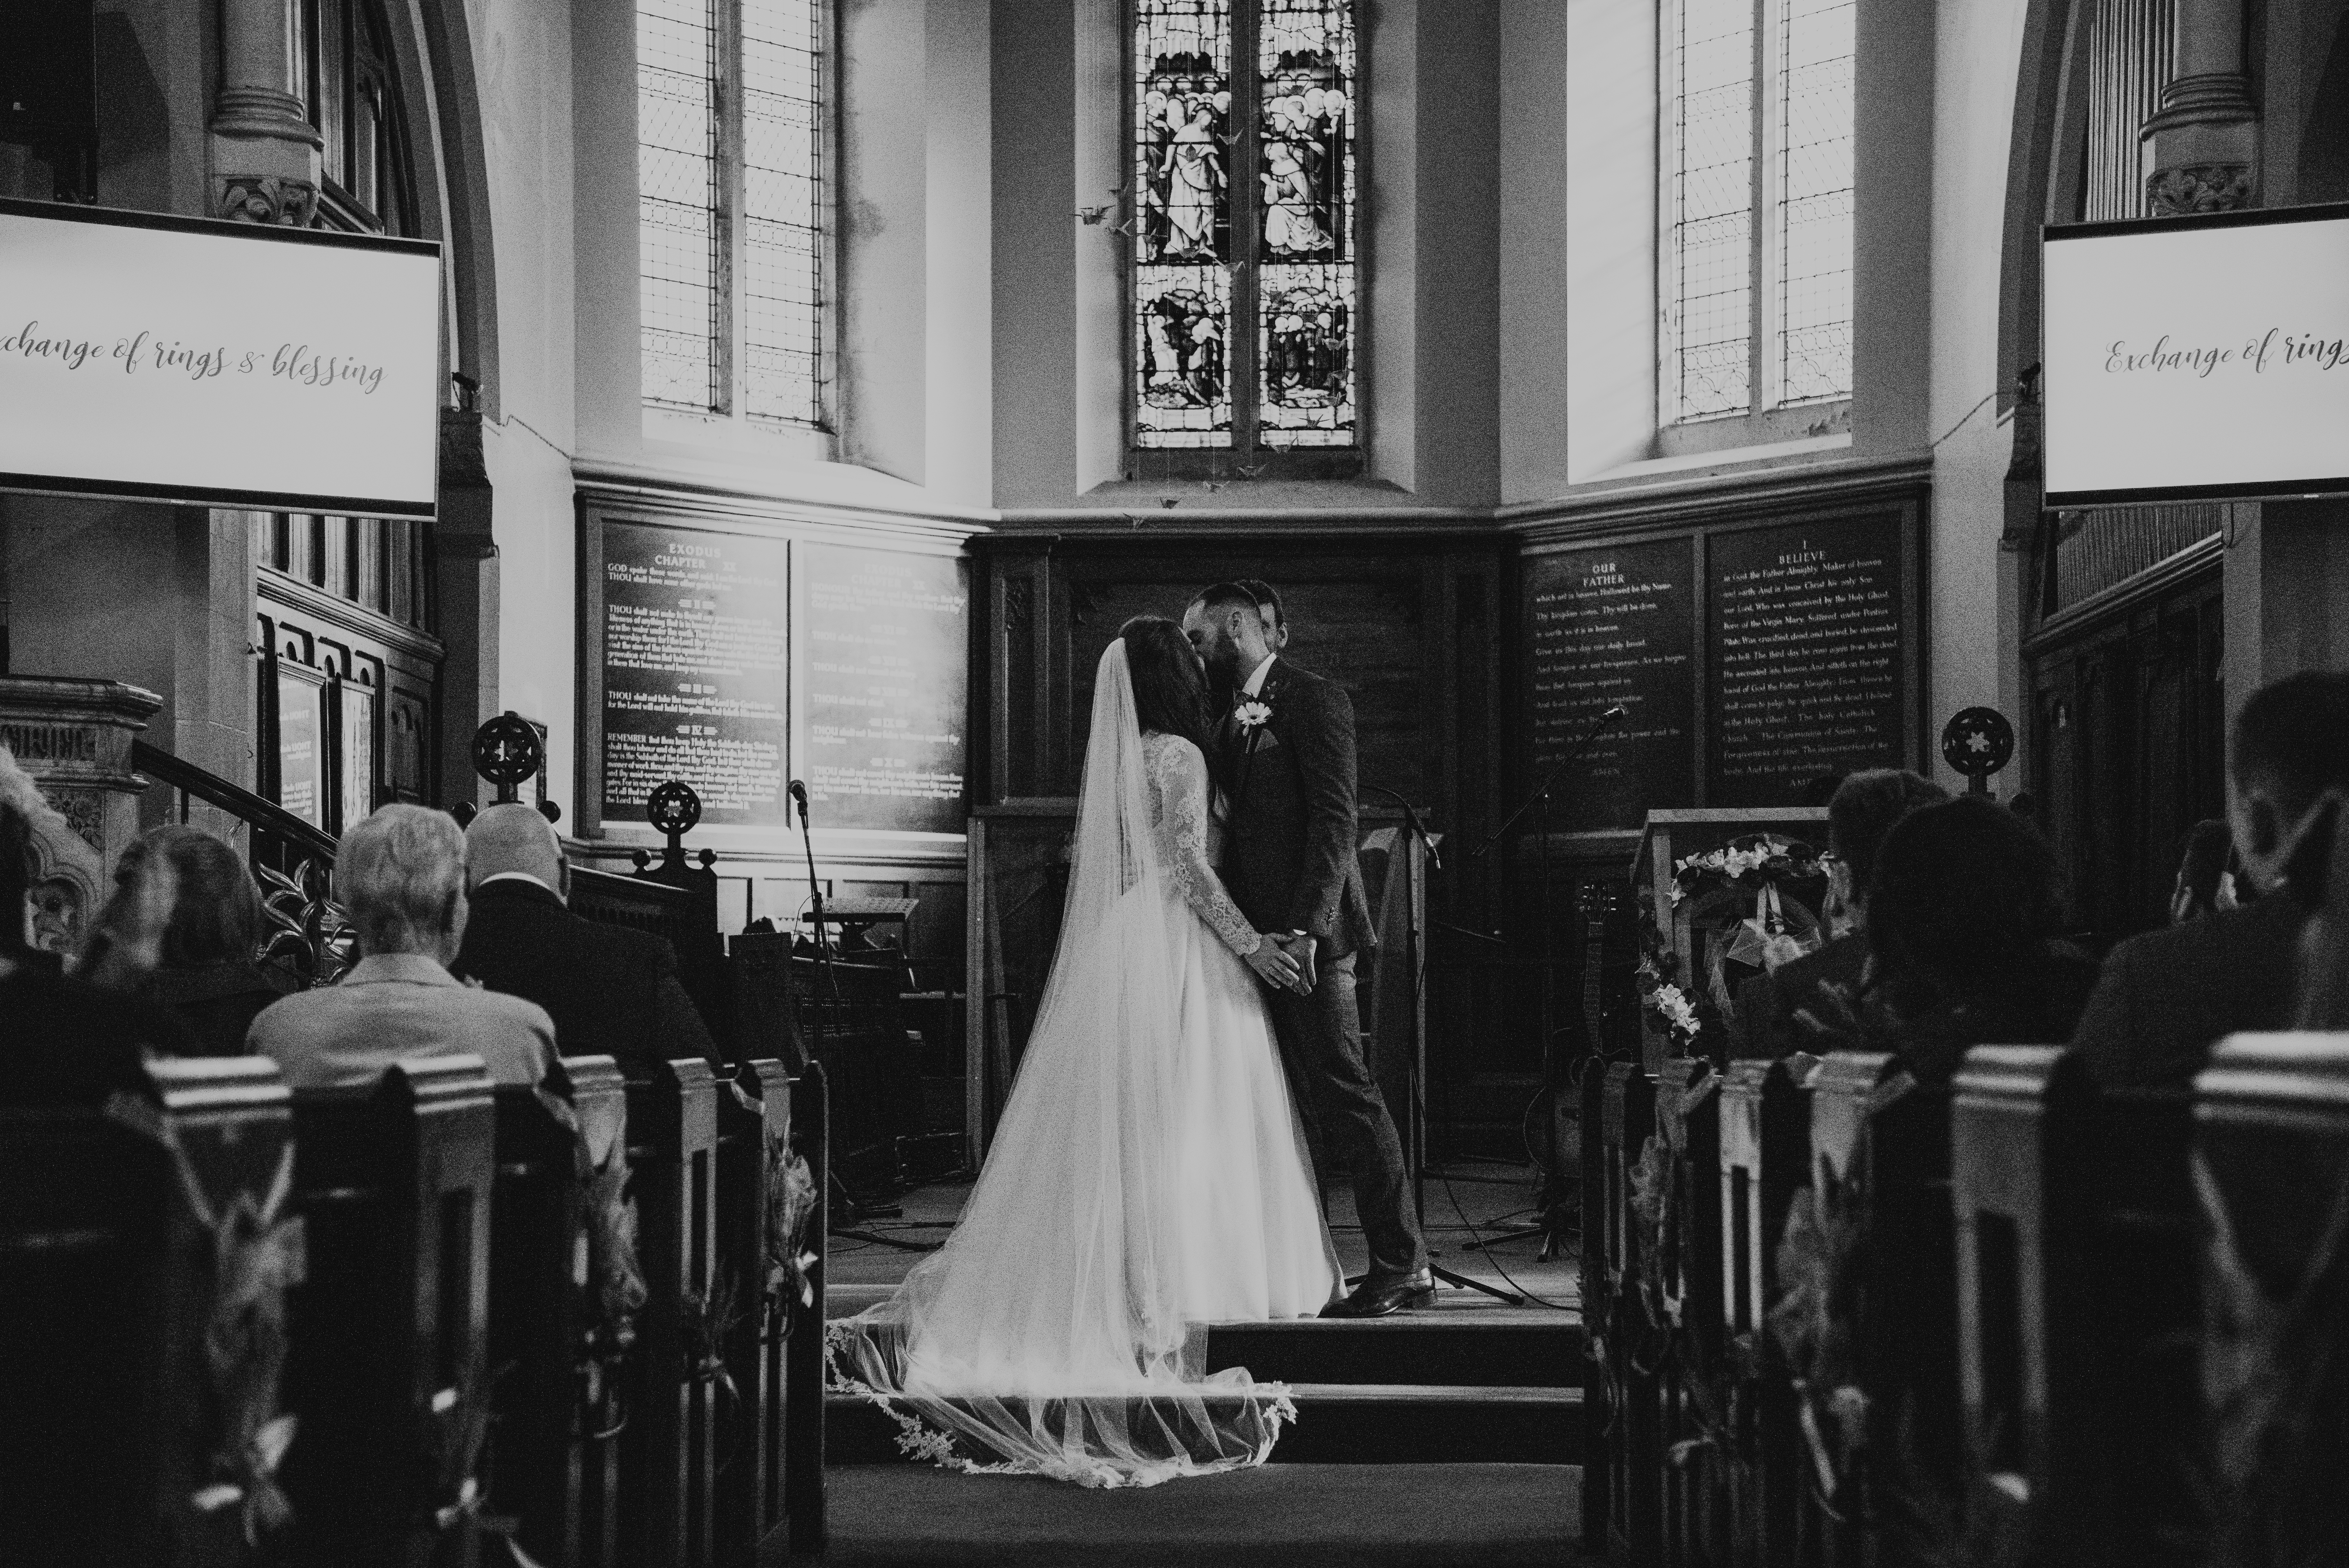 The bride and groom kisses in the church